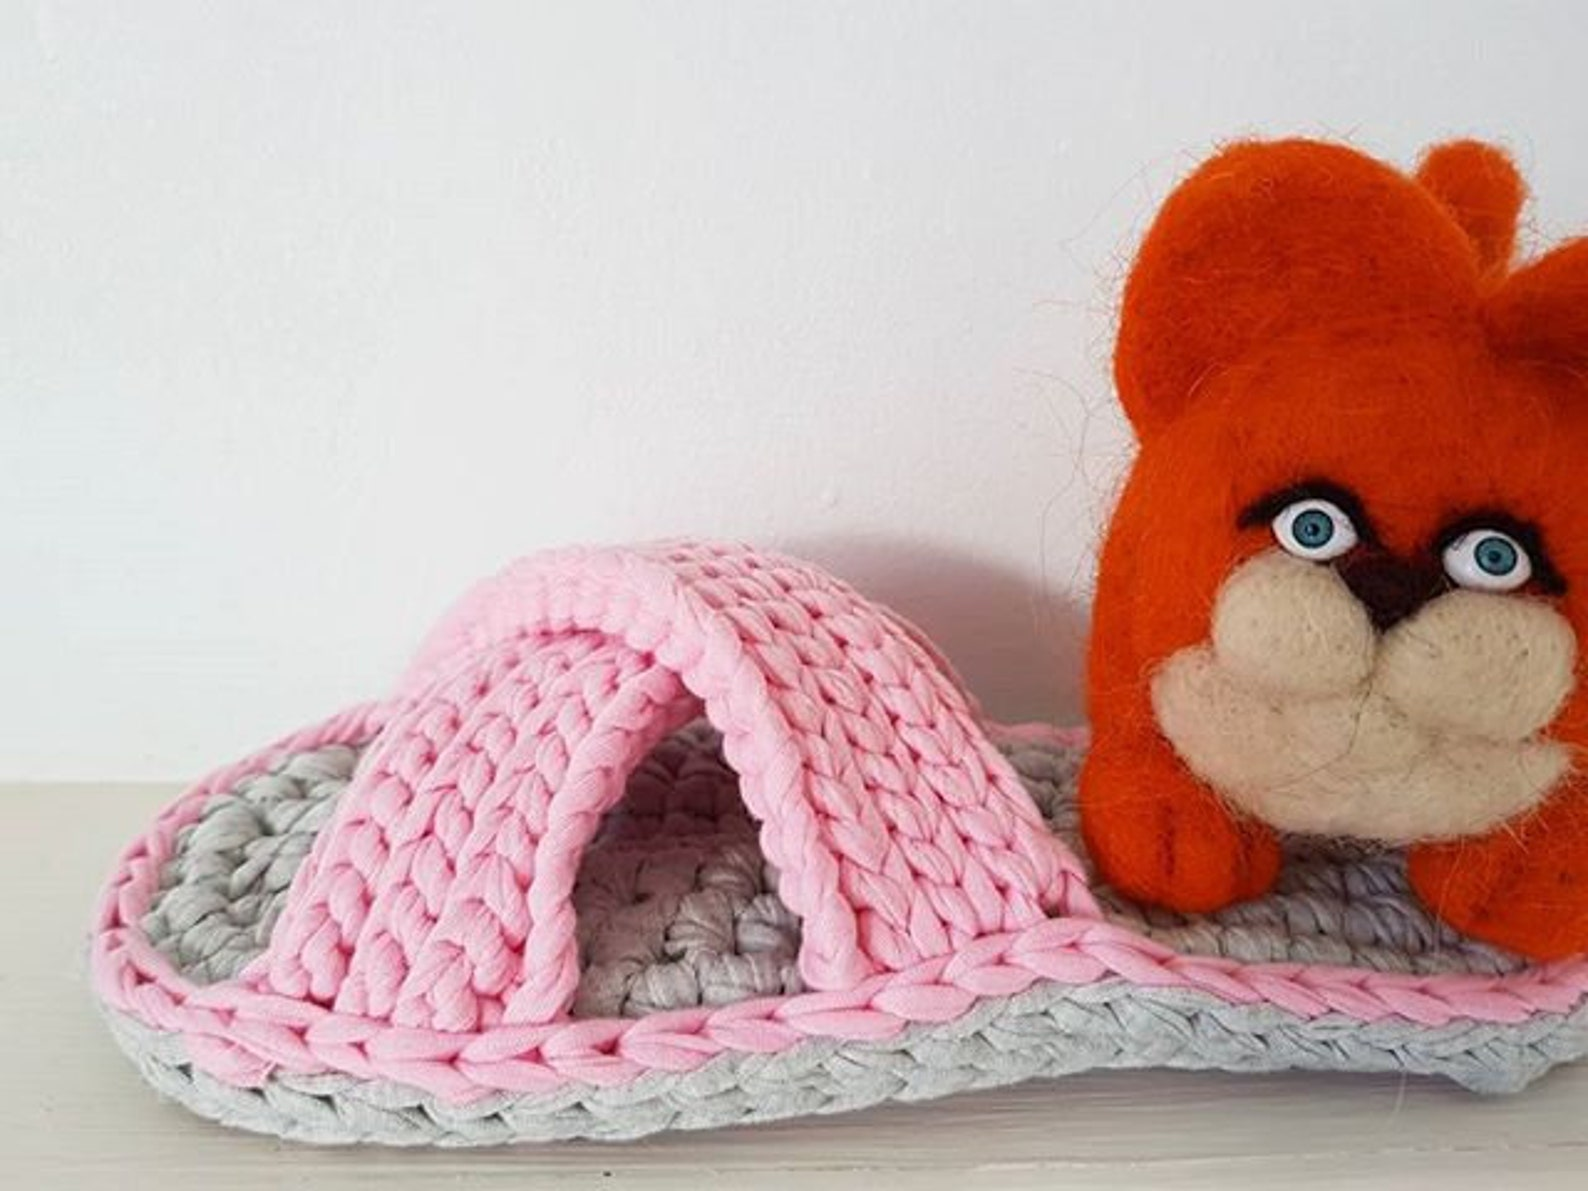 women slippers, bow slippers, ballet flats slippers, handmade slippers, knitted slippers, slippers for home slippers for gift mo